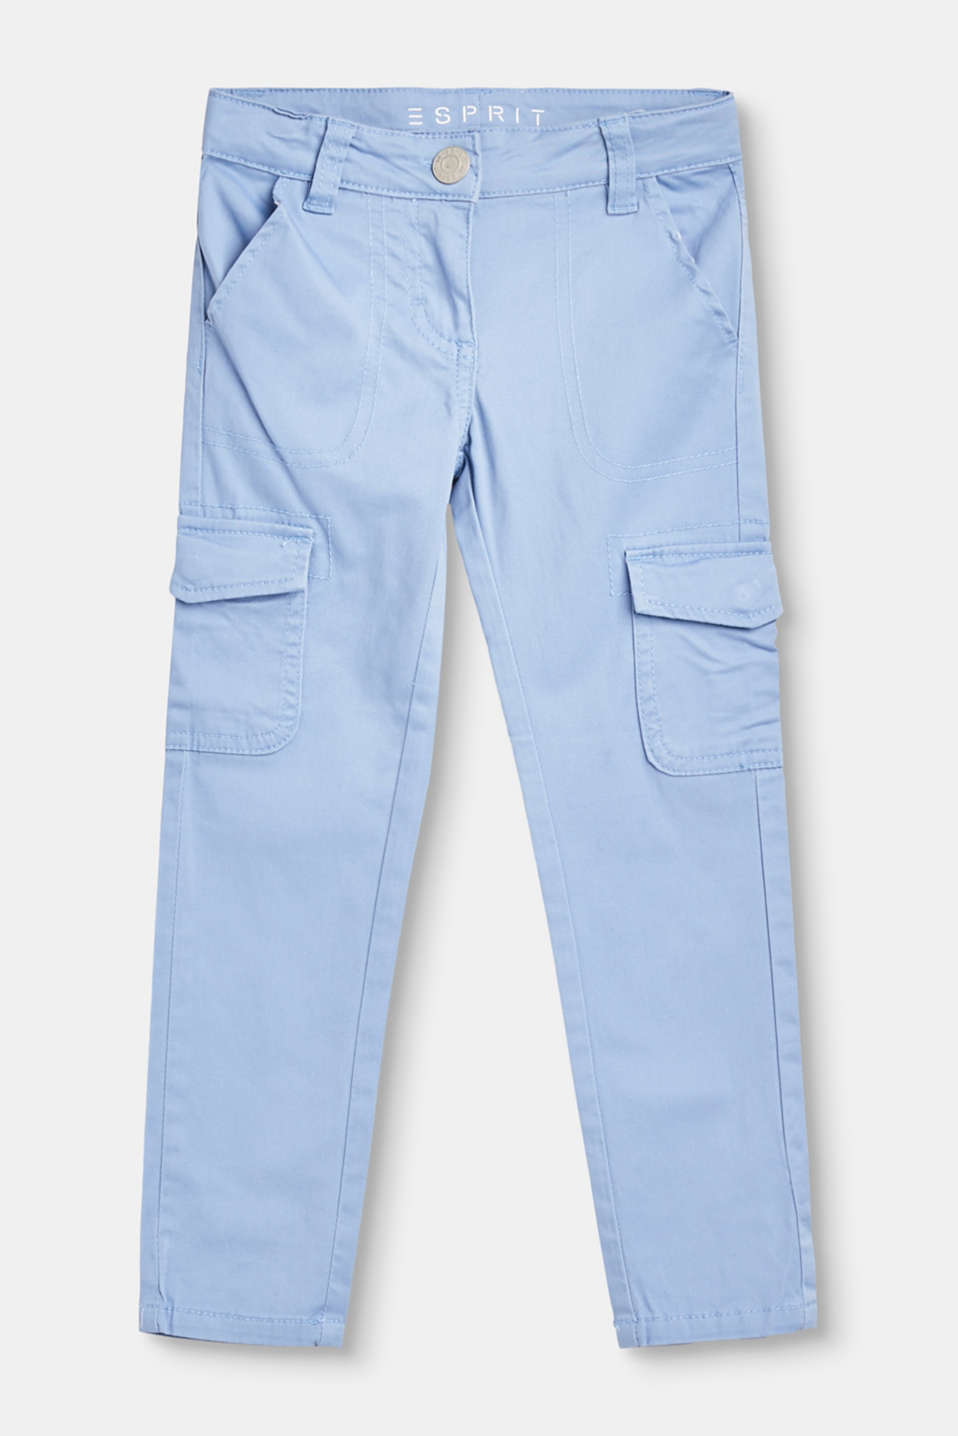 Esprit - Cargo trousers in soft stretchy cotton